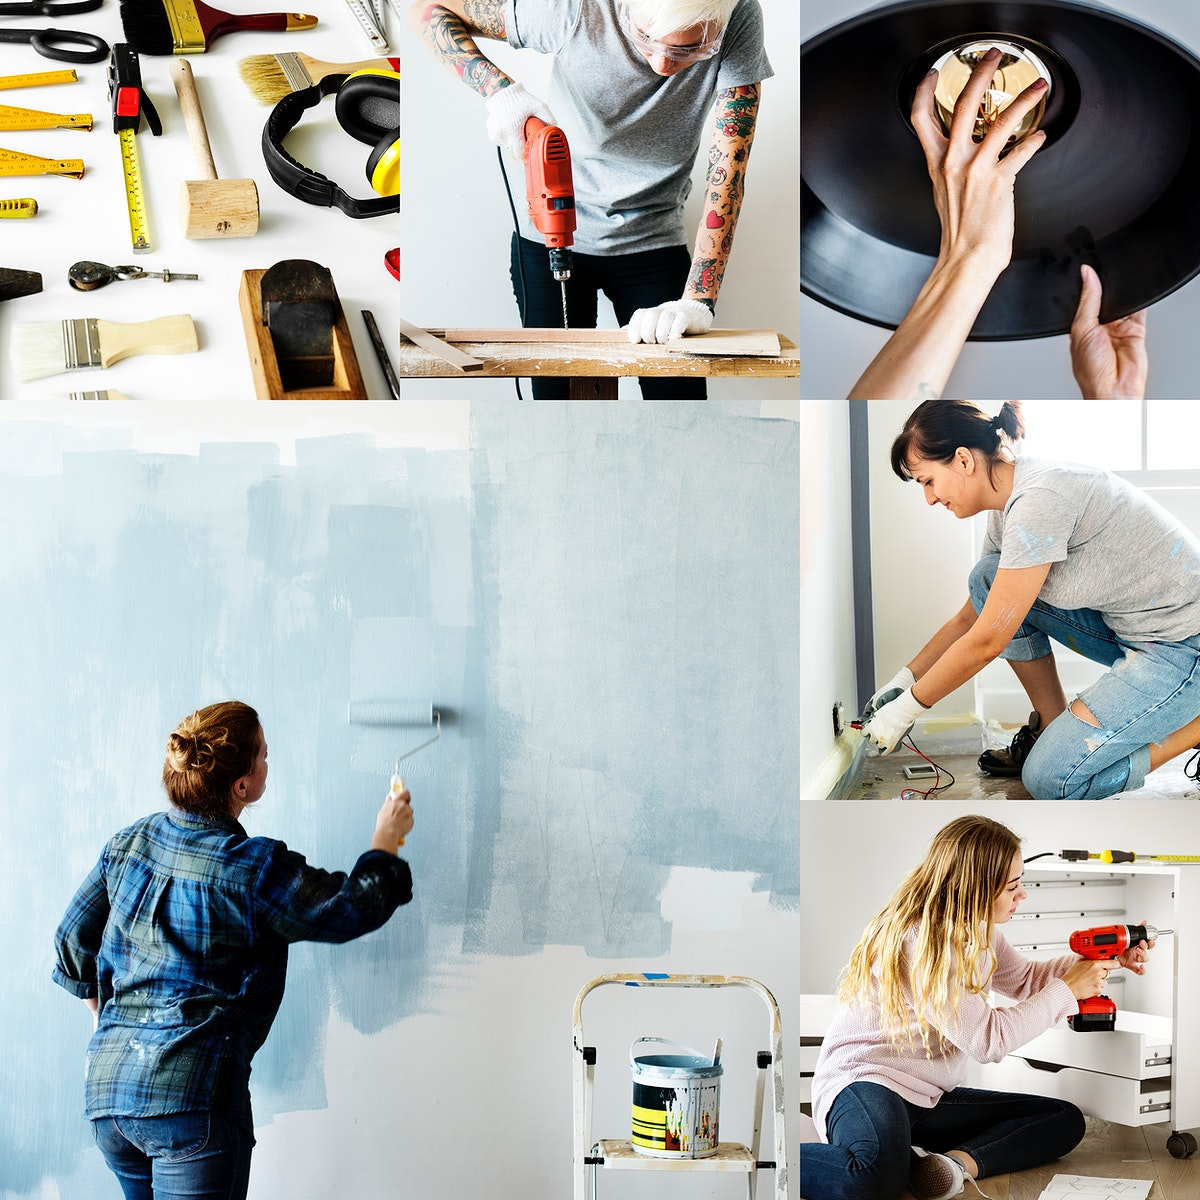 Diverse people fixing their home images